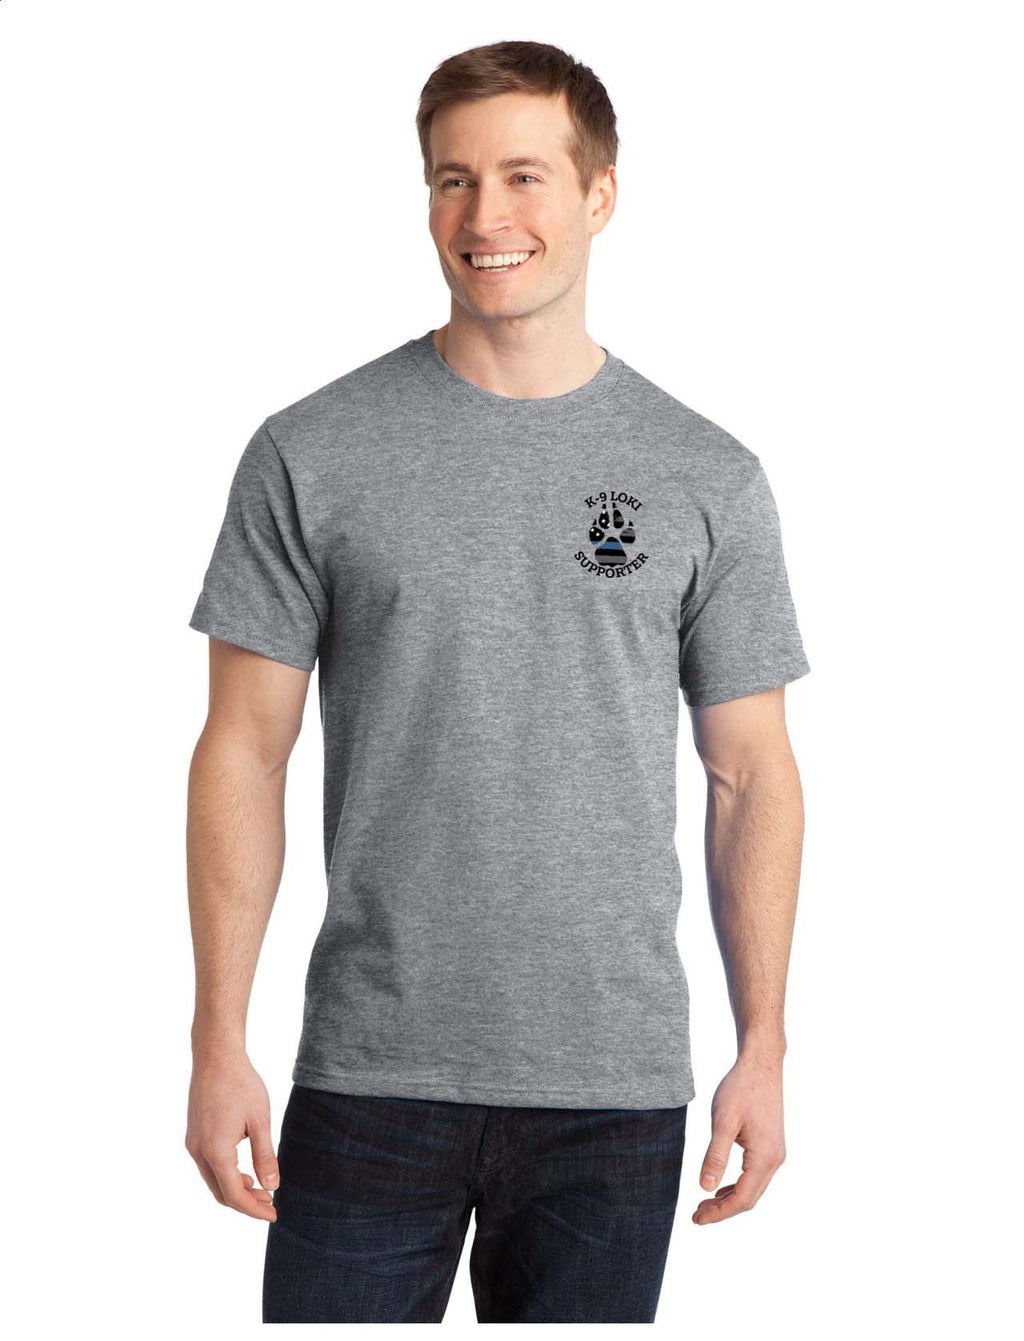 K9 Loki Supporter - Port & Company® Ring Spun Cotton Tee